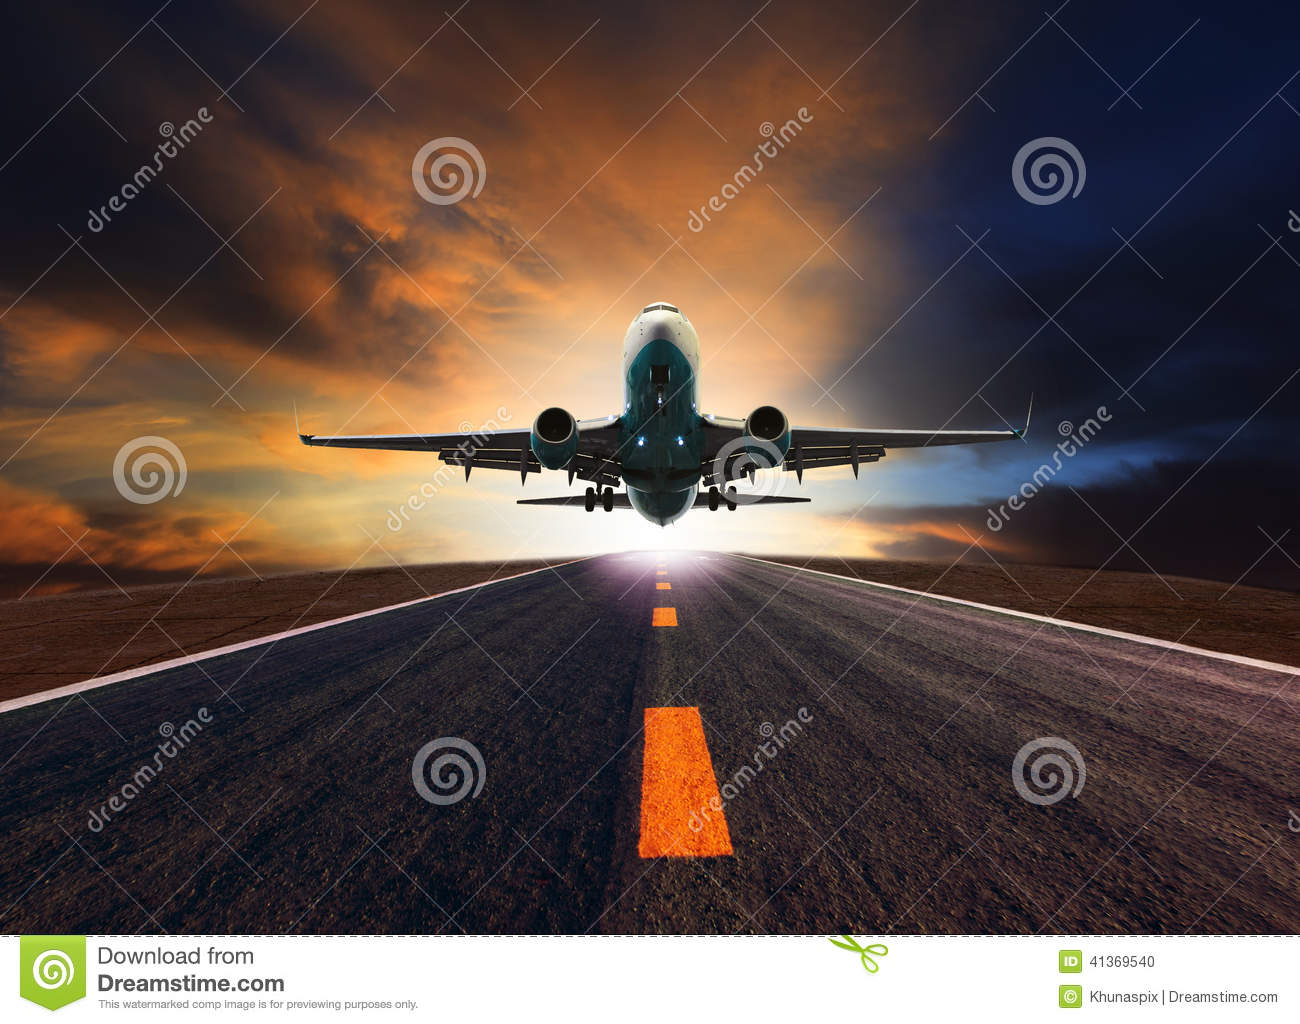 Download Passenger Jet Plane Flying Over Airport Runway Against Beautiful Stock Photo - Image of business, dusky: 41369540